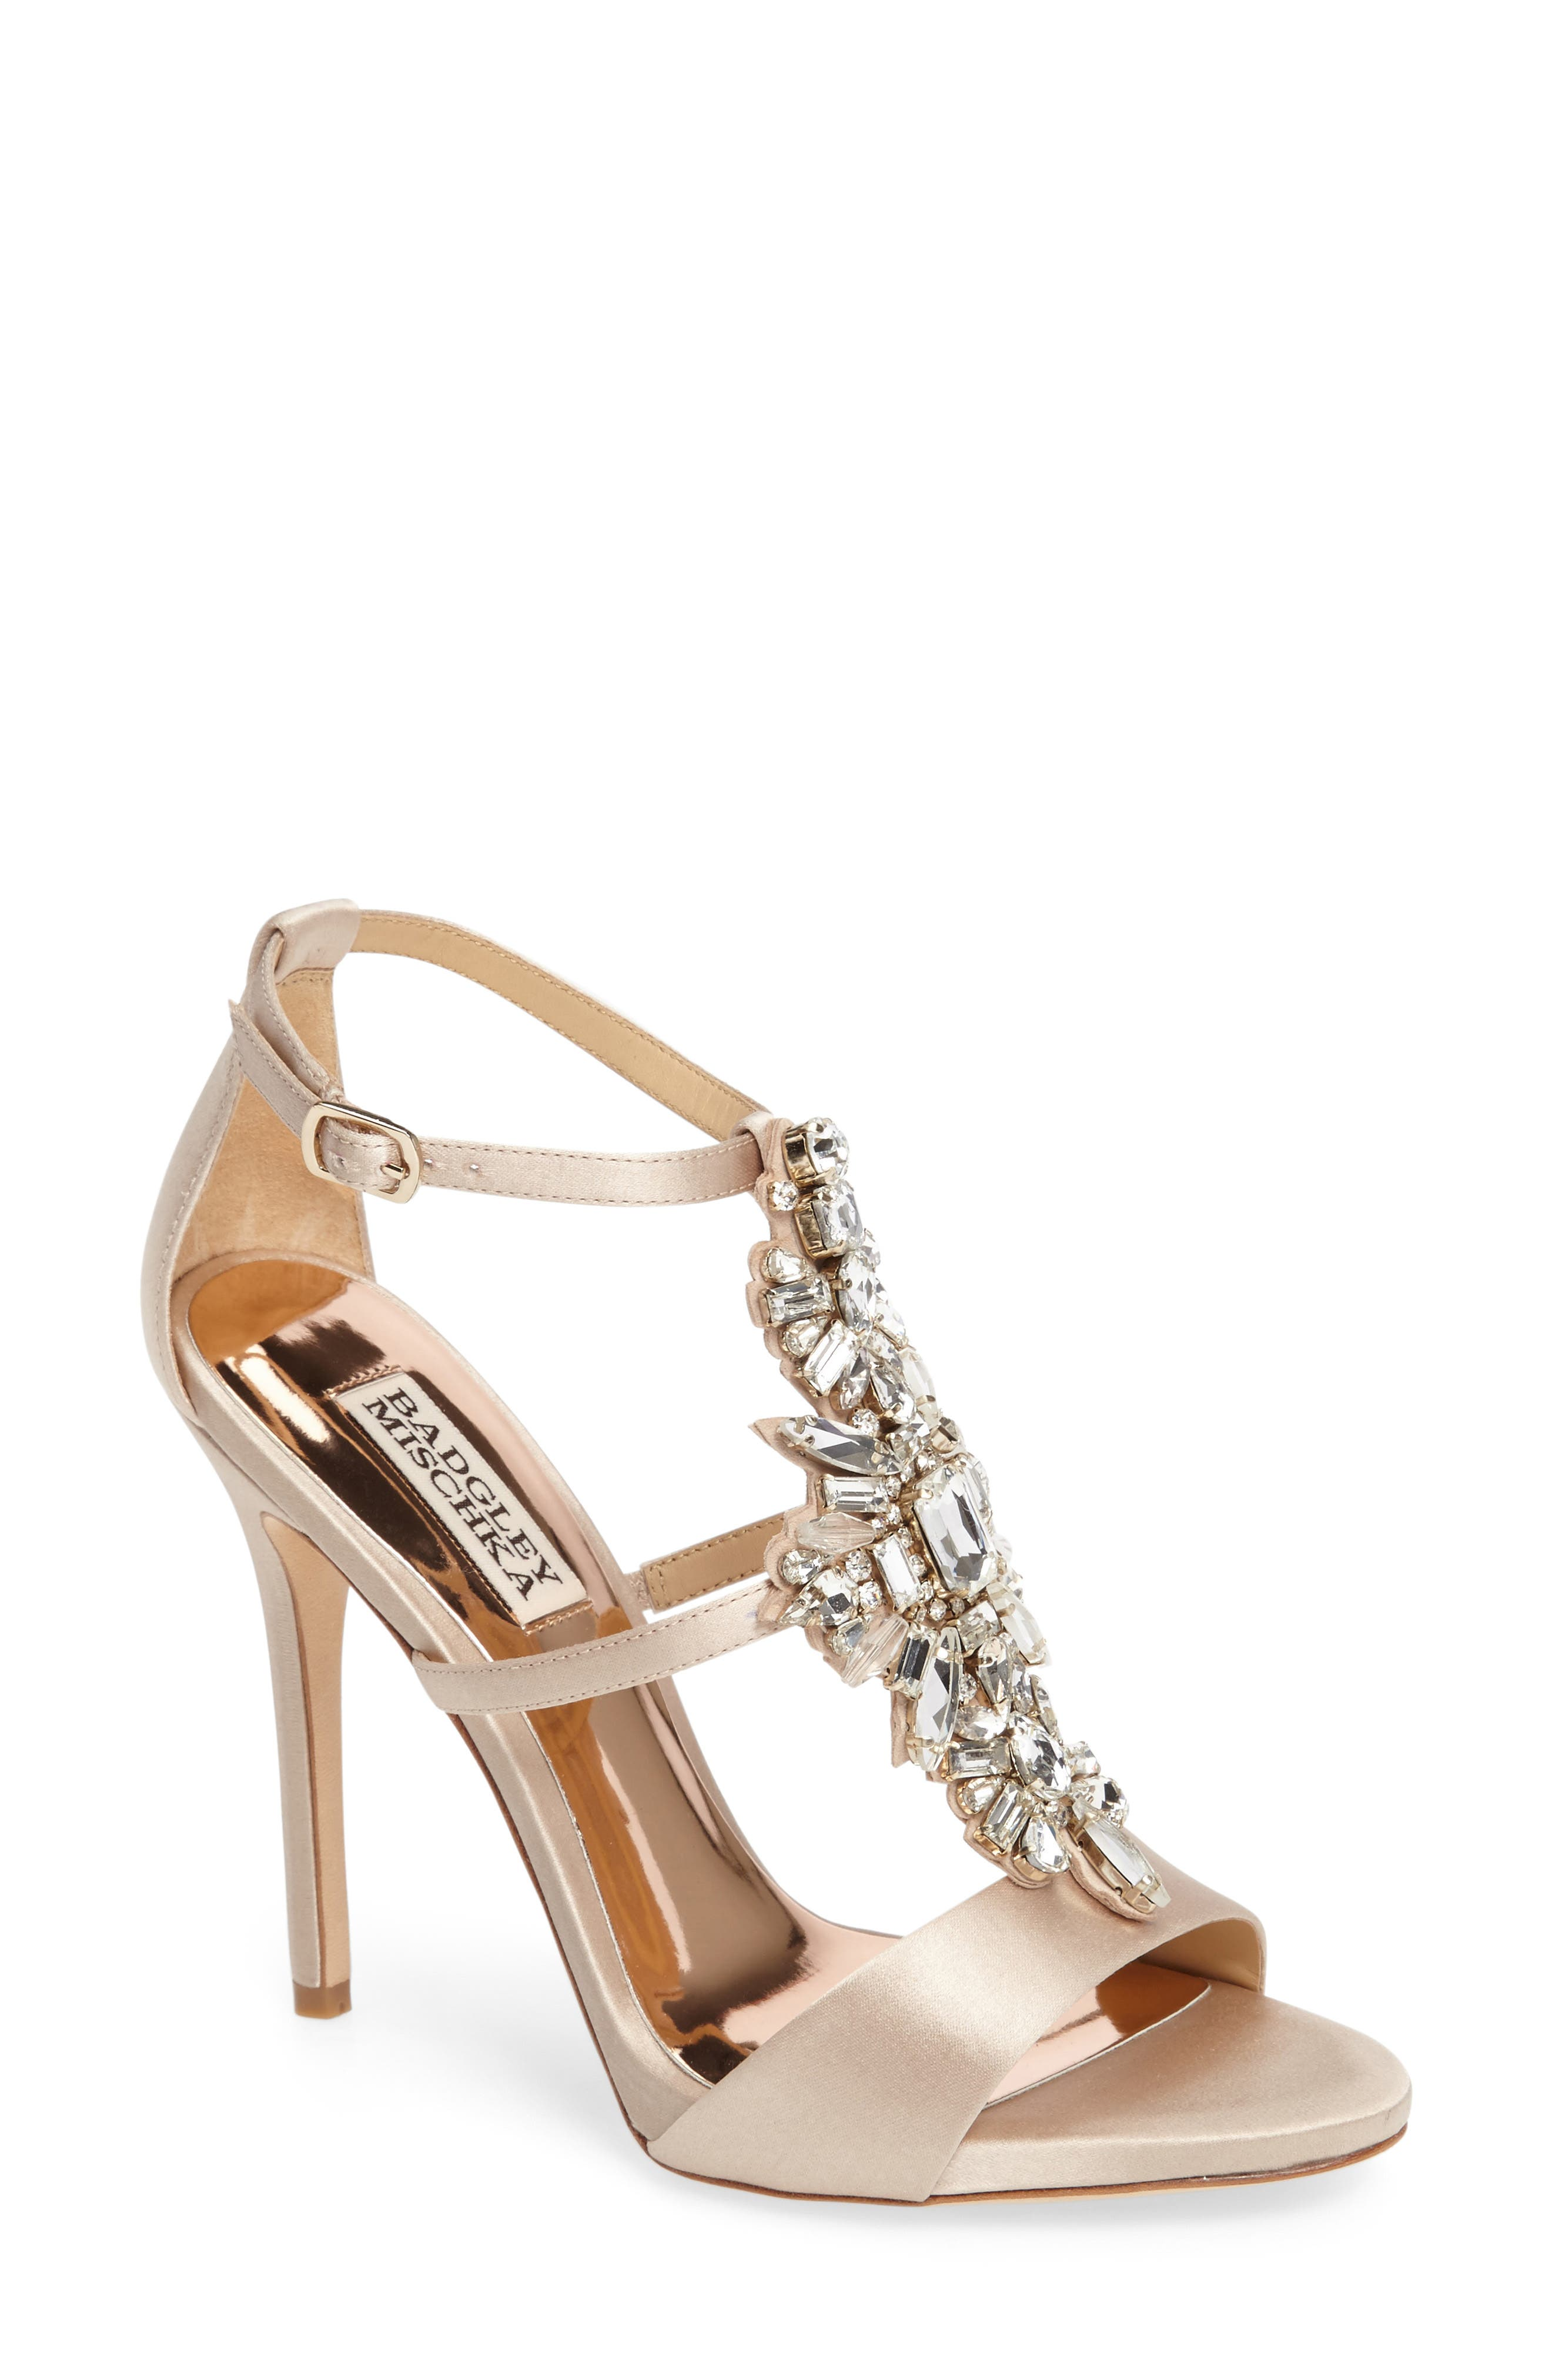 Badgley Mischka Basile Crystal Embellished Sandal,                             Main thumbnail 1, color,                             250